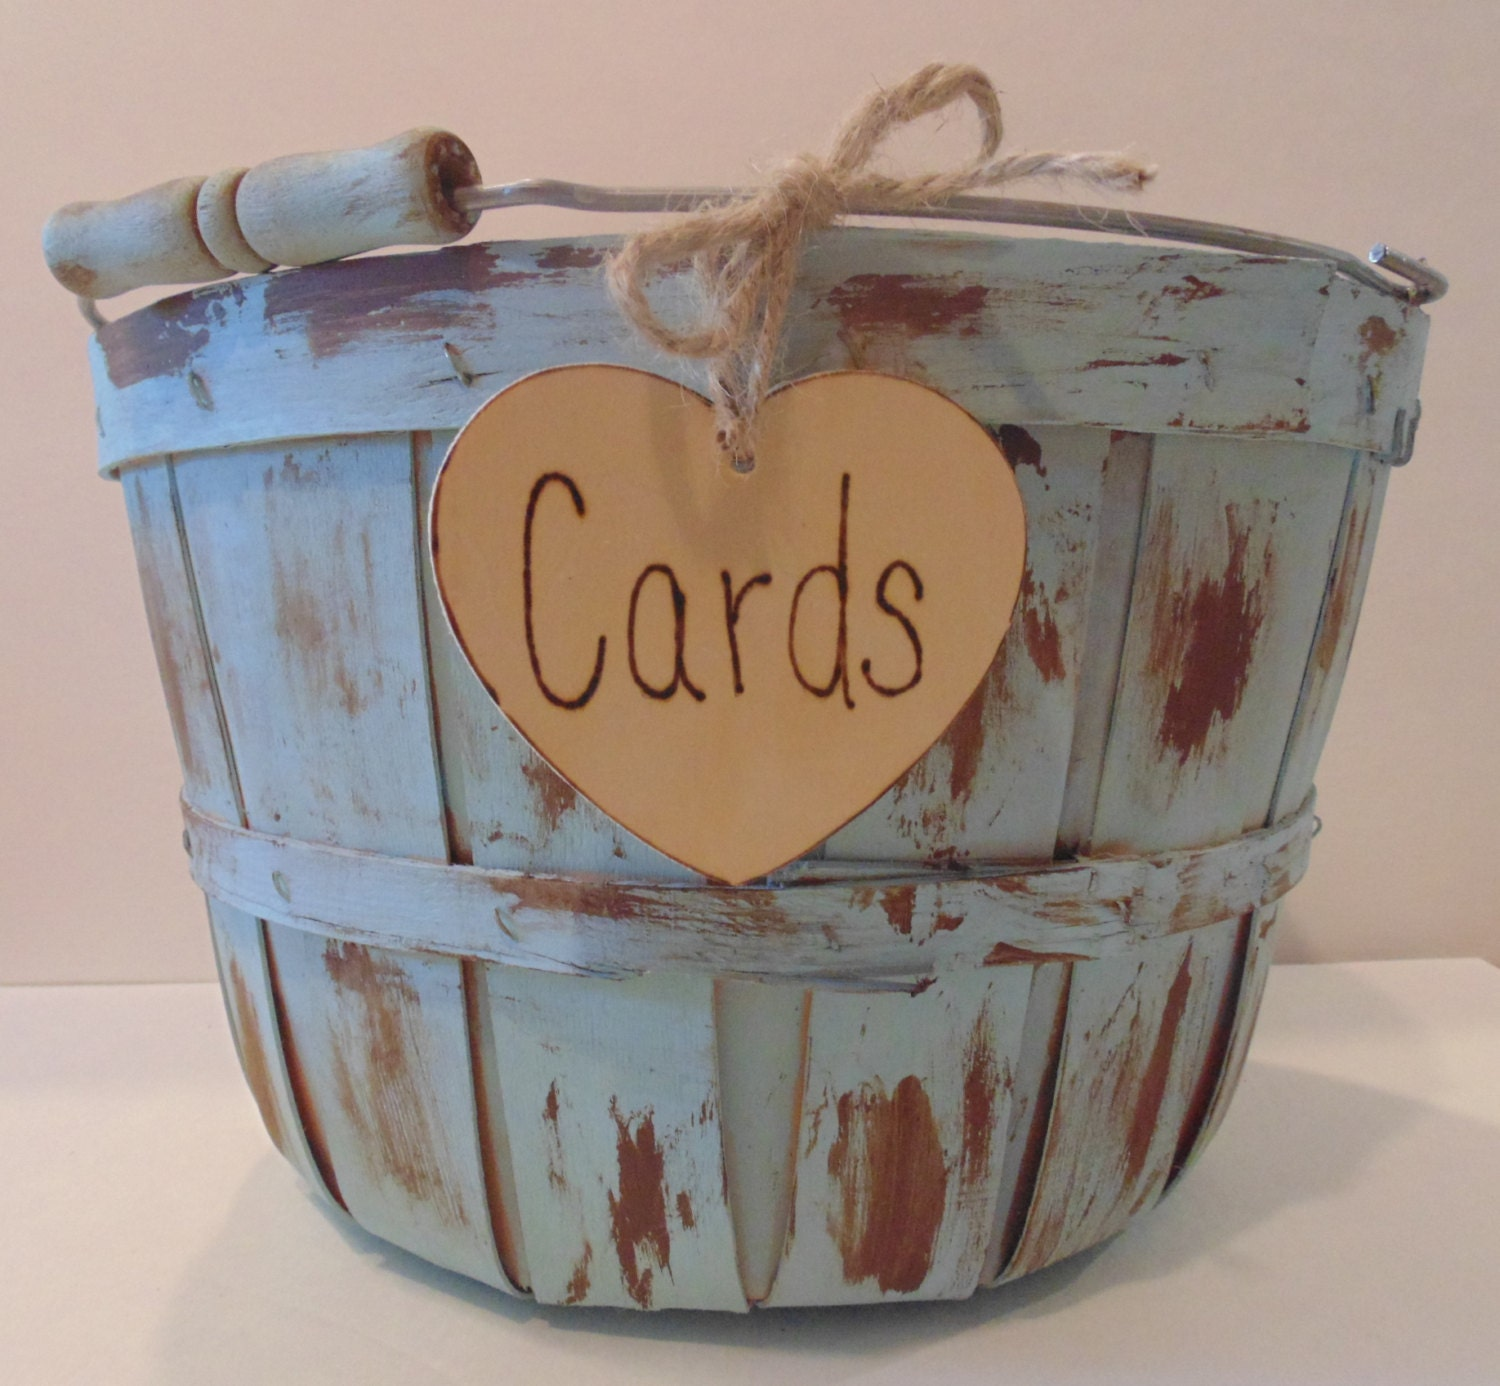 Basket For Wedding Gift Cards : Wedding Card Basket-Card Box-Rustic Card Holder Painted and